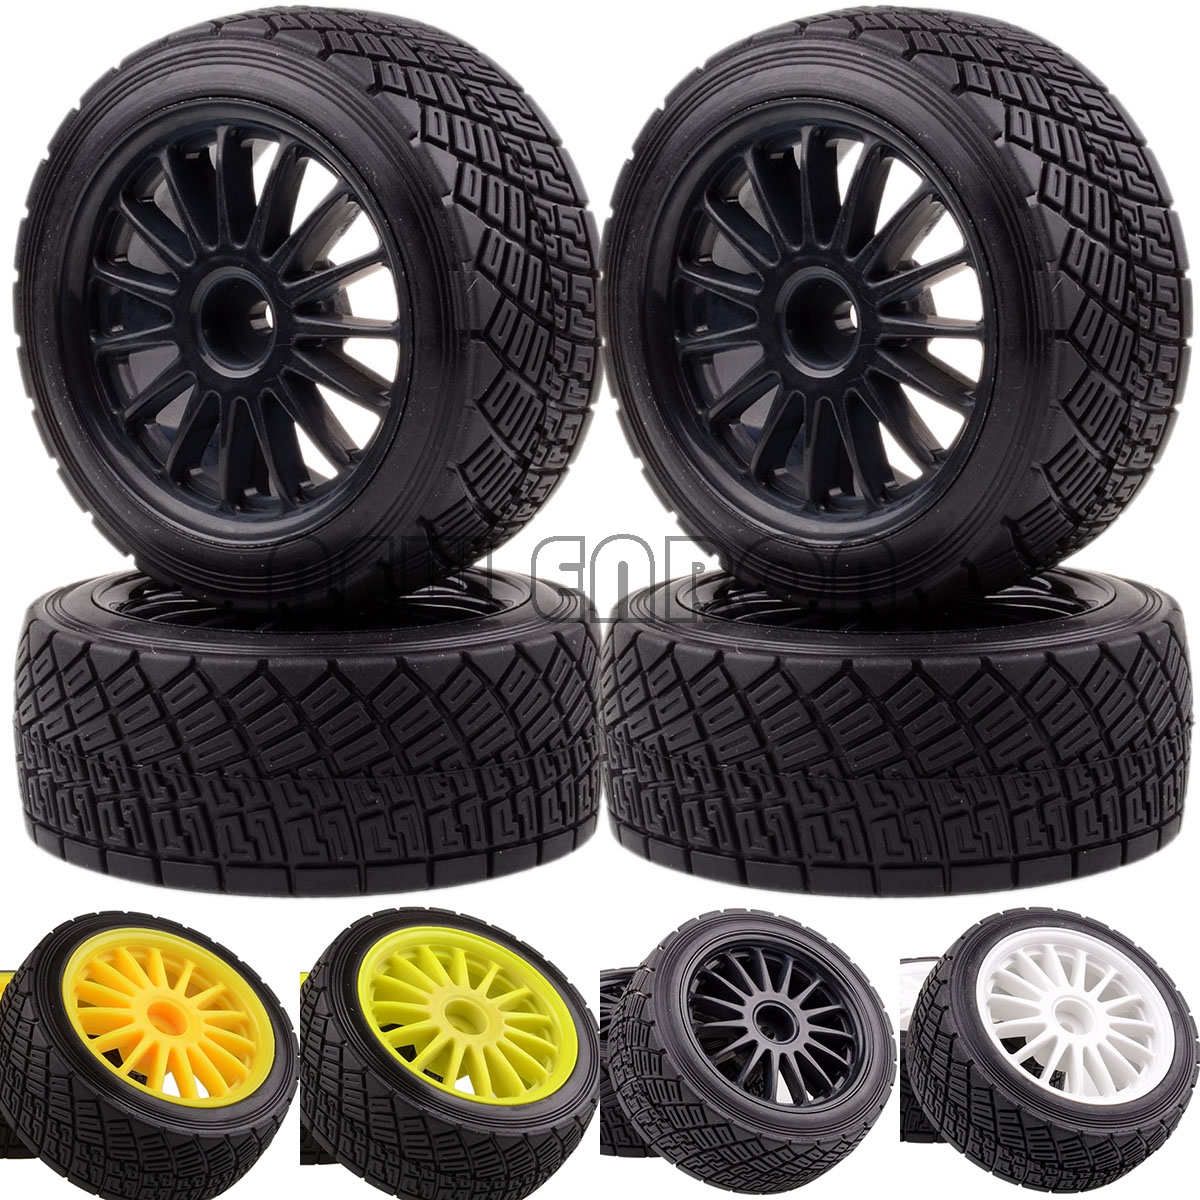 """NEW ENRON RC CAR PART RC 1/10 RC TIRES 4PCS 2.2"""" WHEEL Rim & Tires Tyre Fit 1/10 HPI WR8 Flux Rally 3.0 110697 94177-in Parts & Accessories from Toys & Hobbies"""